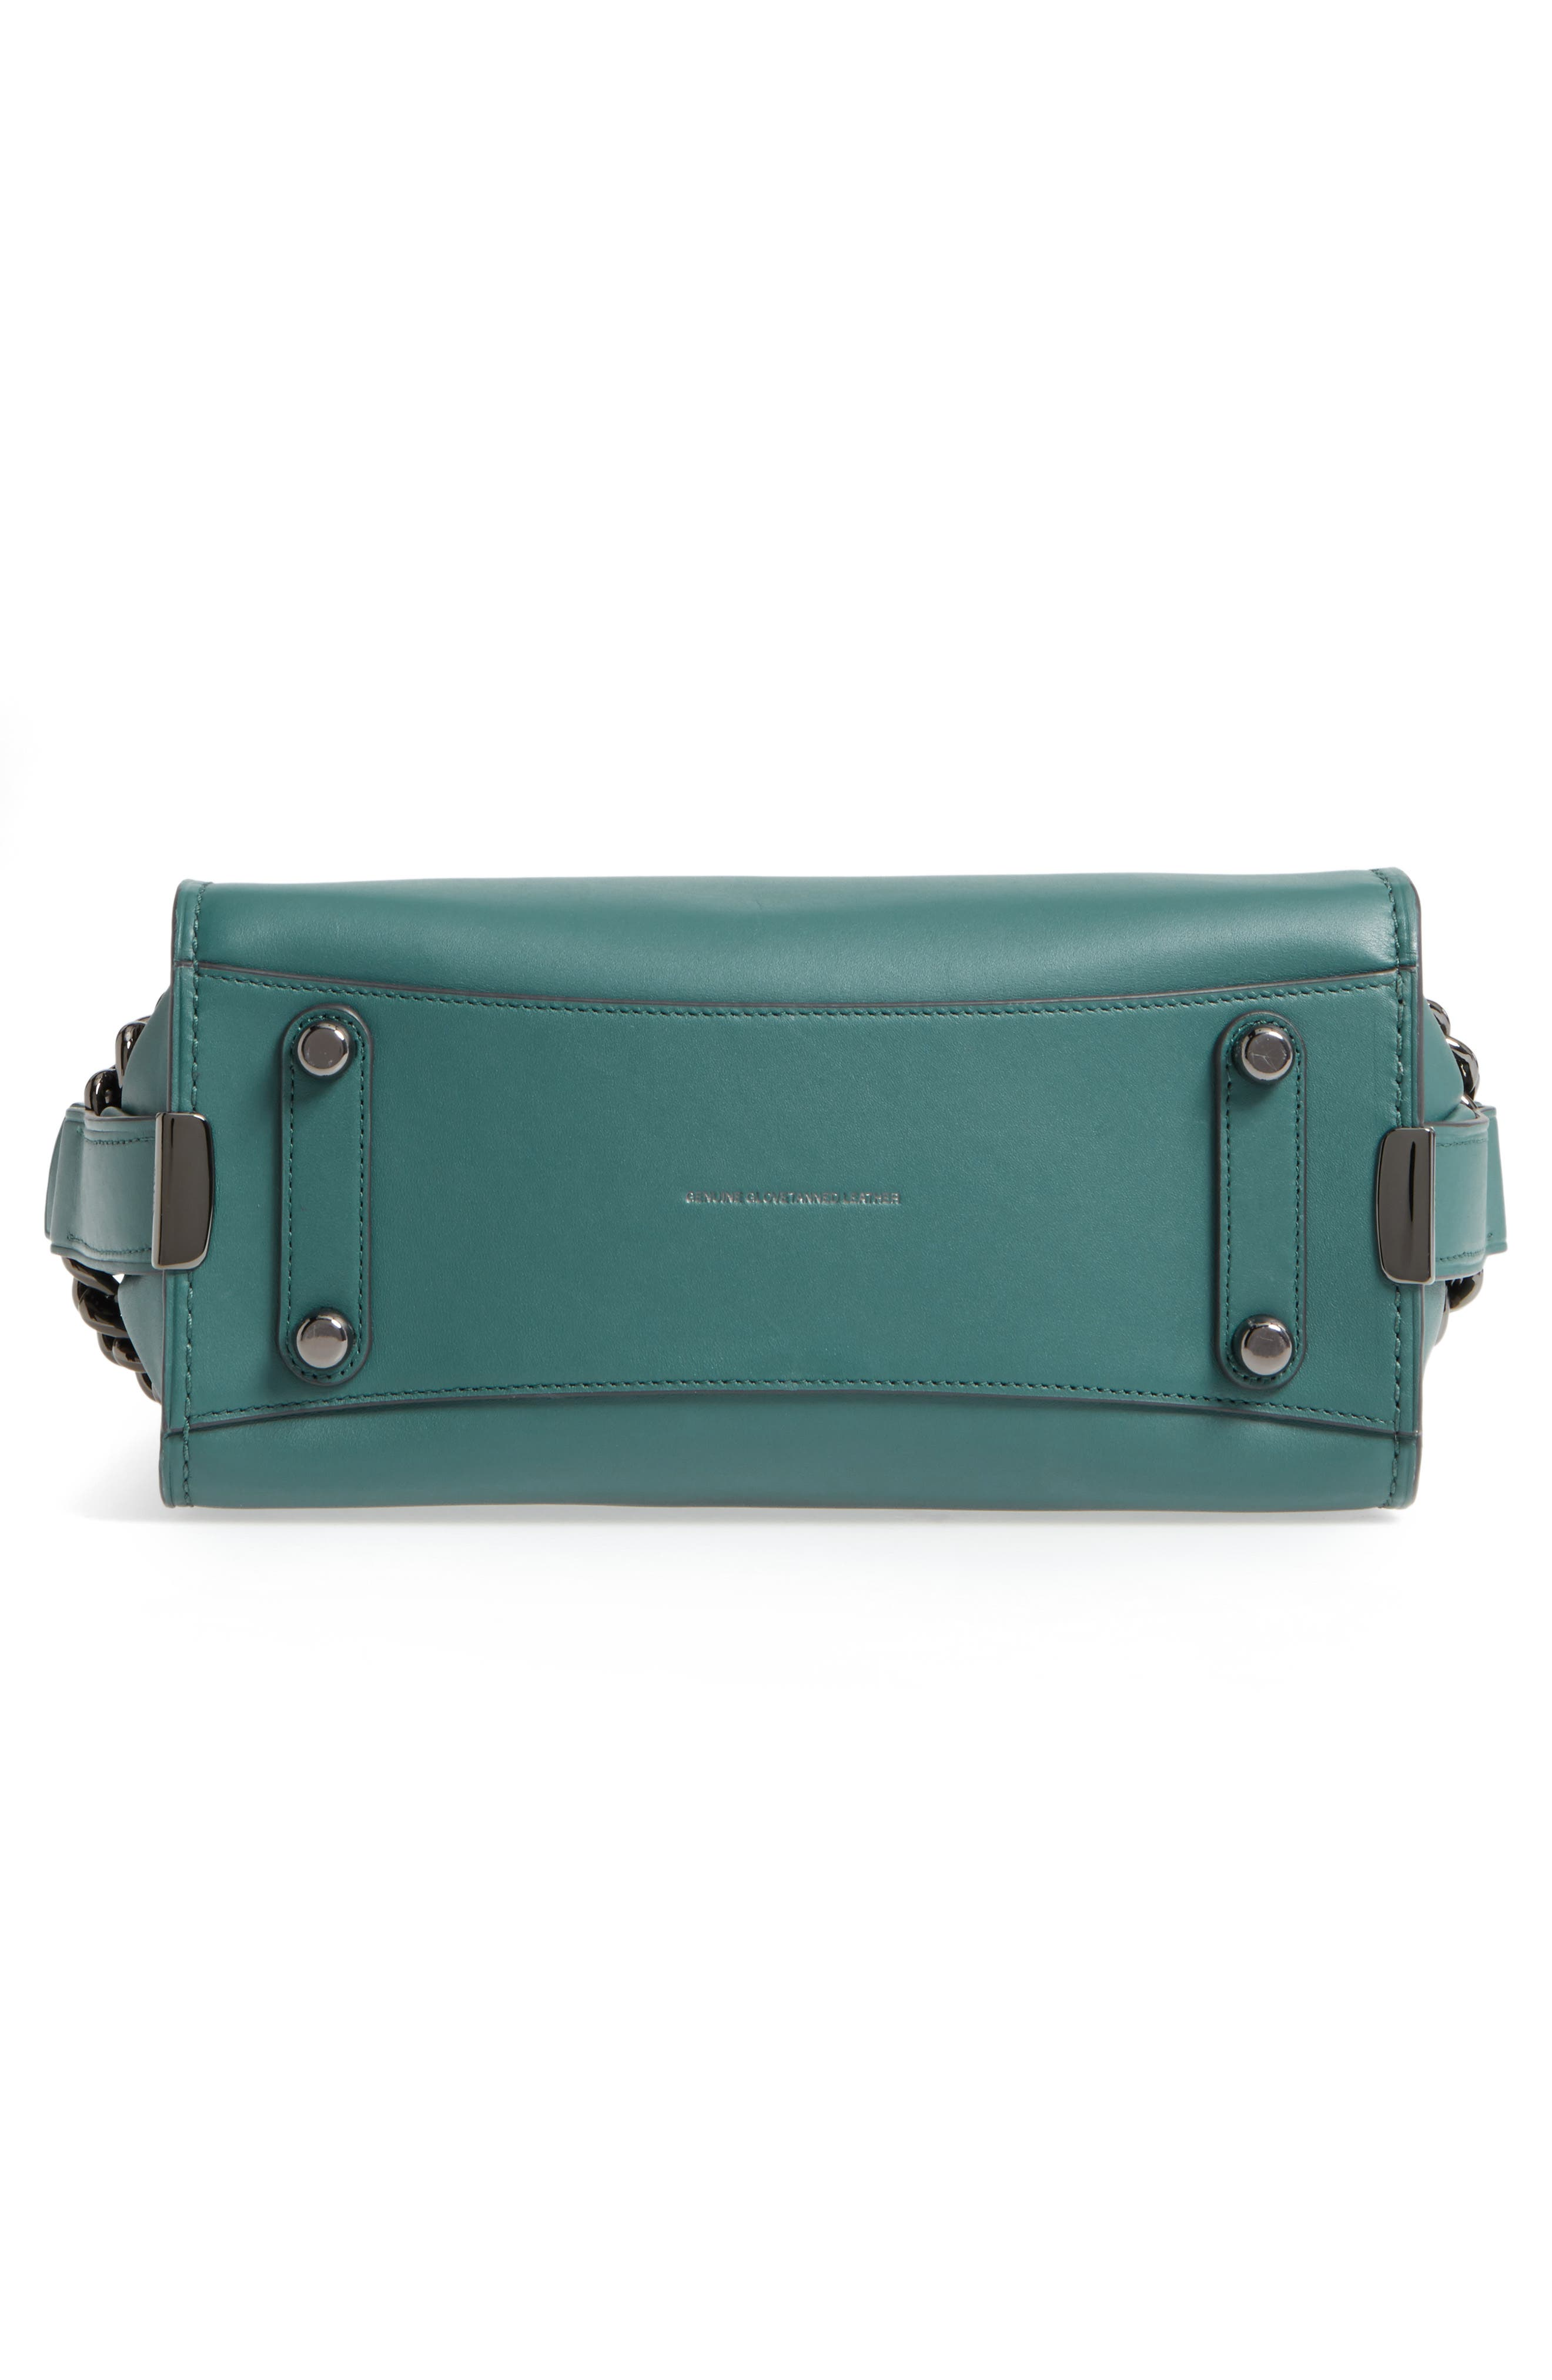 ID Bracelet Swagger 27 Calfskin Leather Satchel,                             Alternate thumbnail 5, color,                             Dark Turquoise